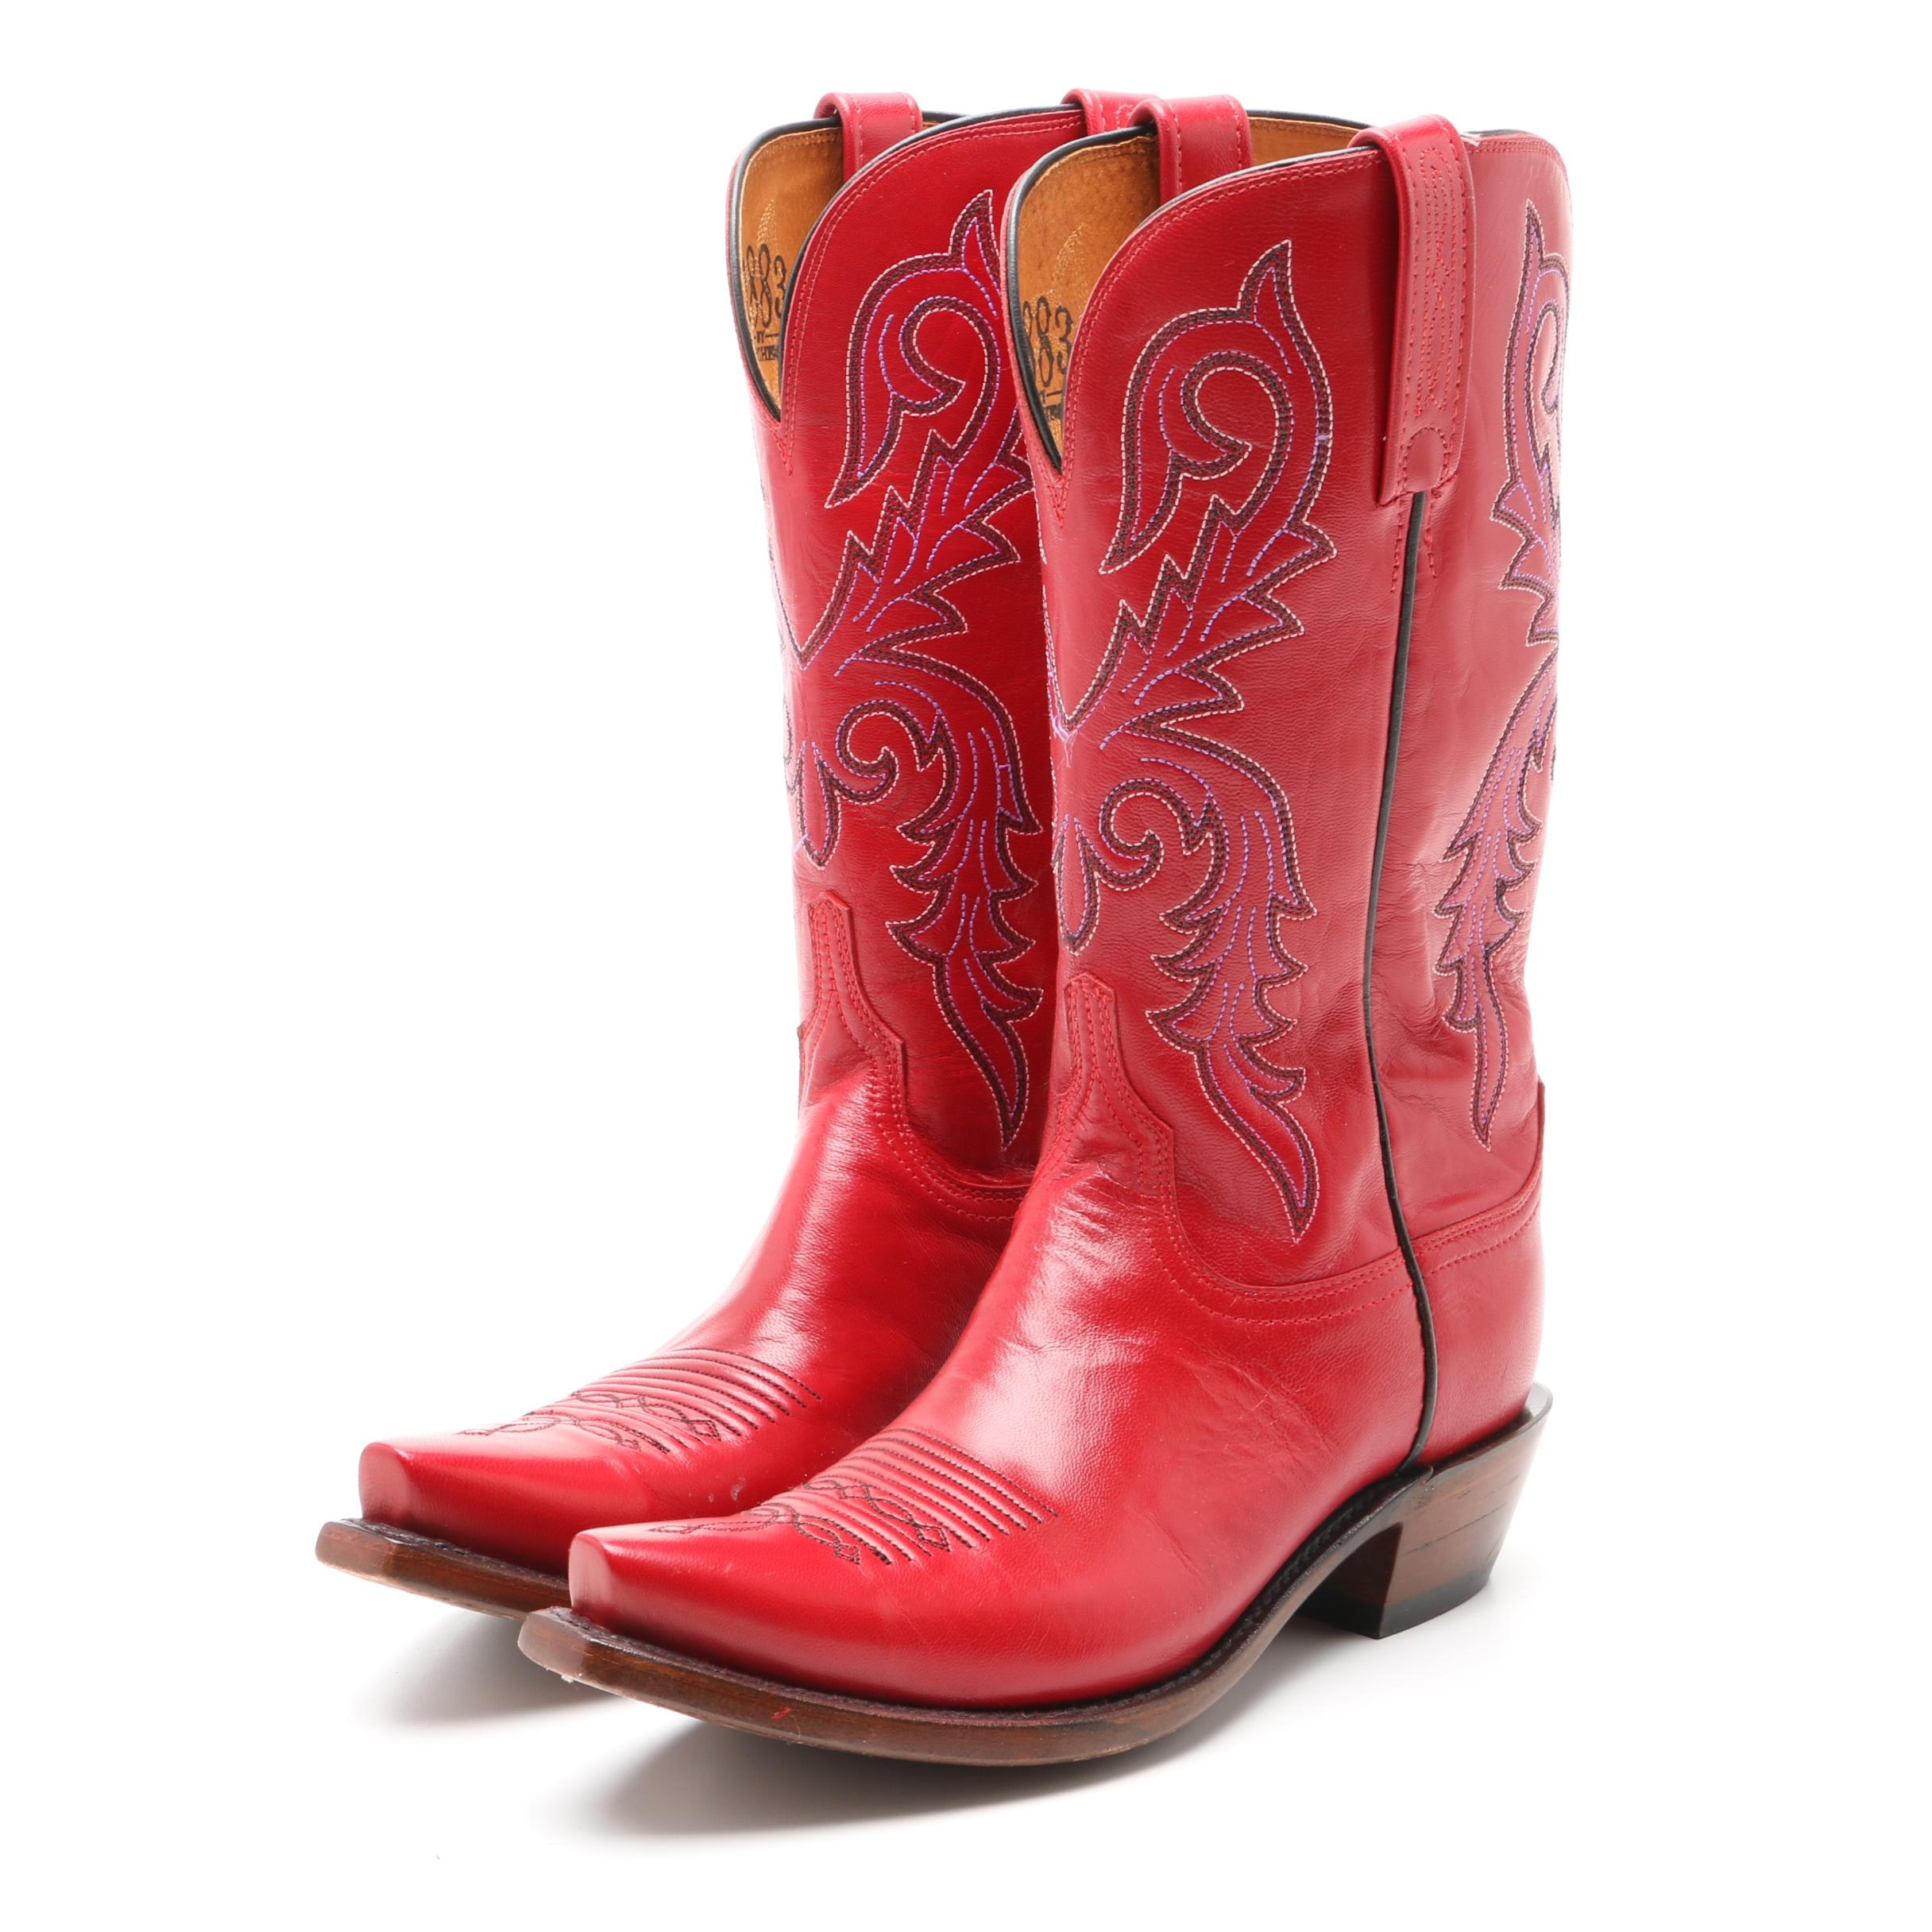 Pair of Women's Lucchese Red Leather Western Boots